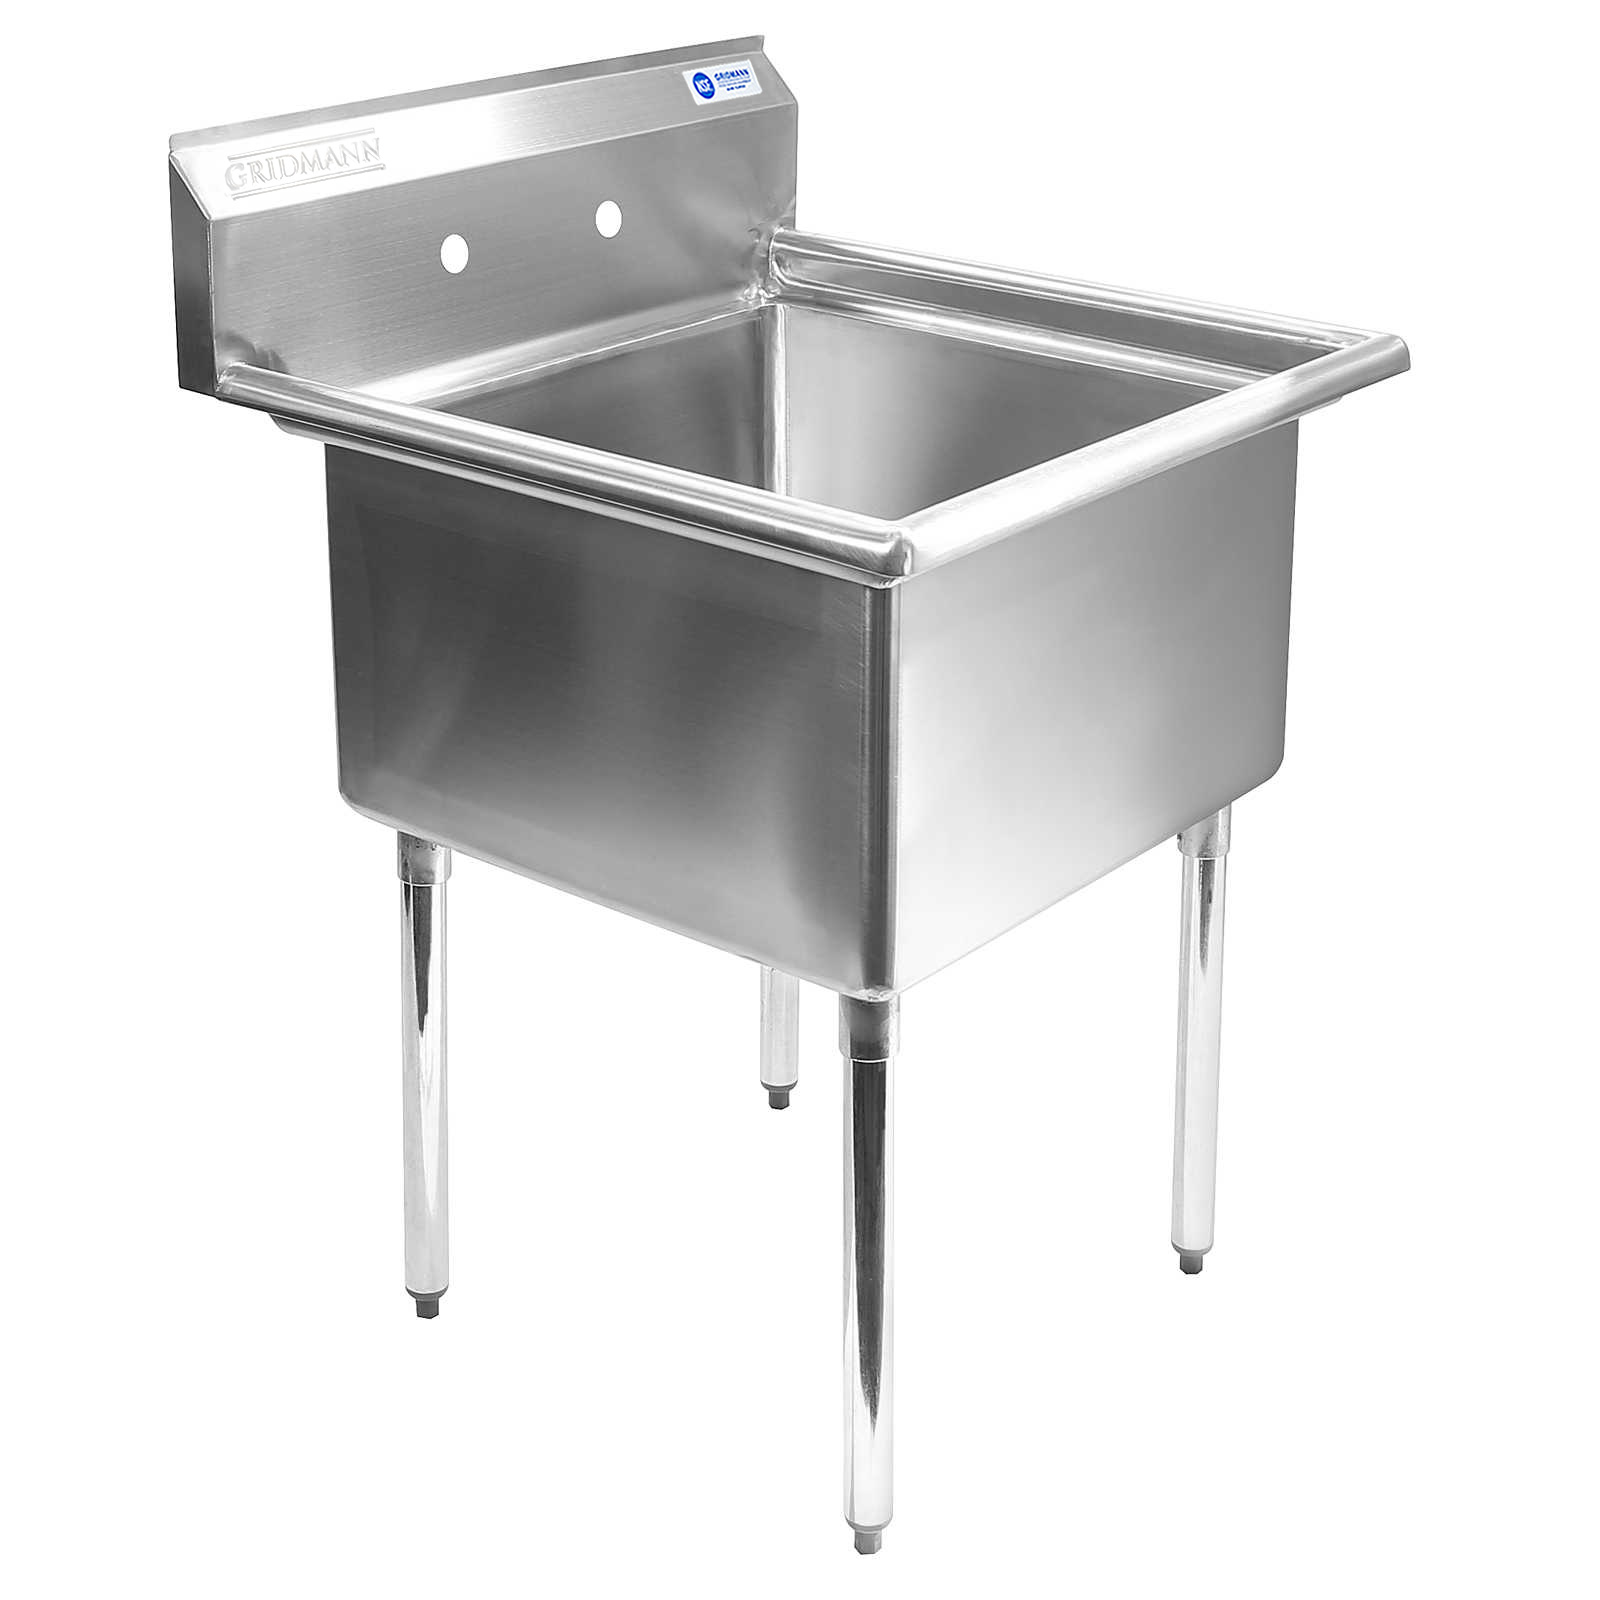 Exceptionnel Gridmann 1 Compartment NSF Stainless Steel Commercial Kitchen Prep U0026 Utility  Sink   30 In.